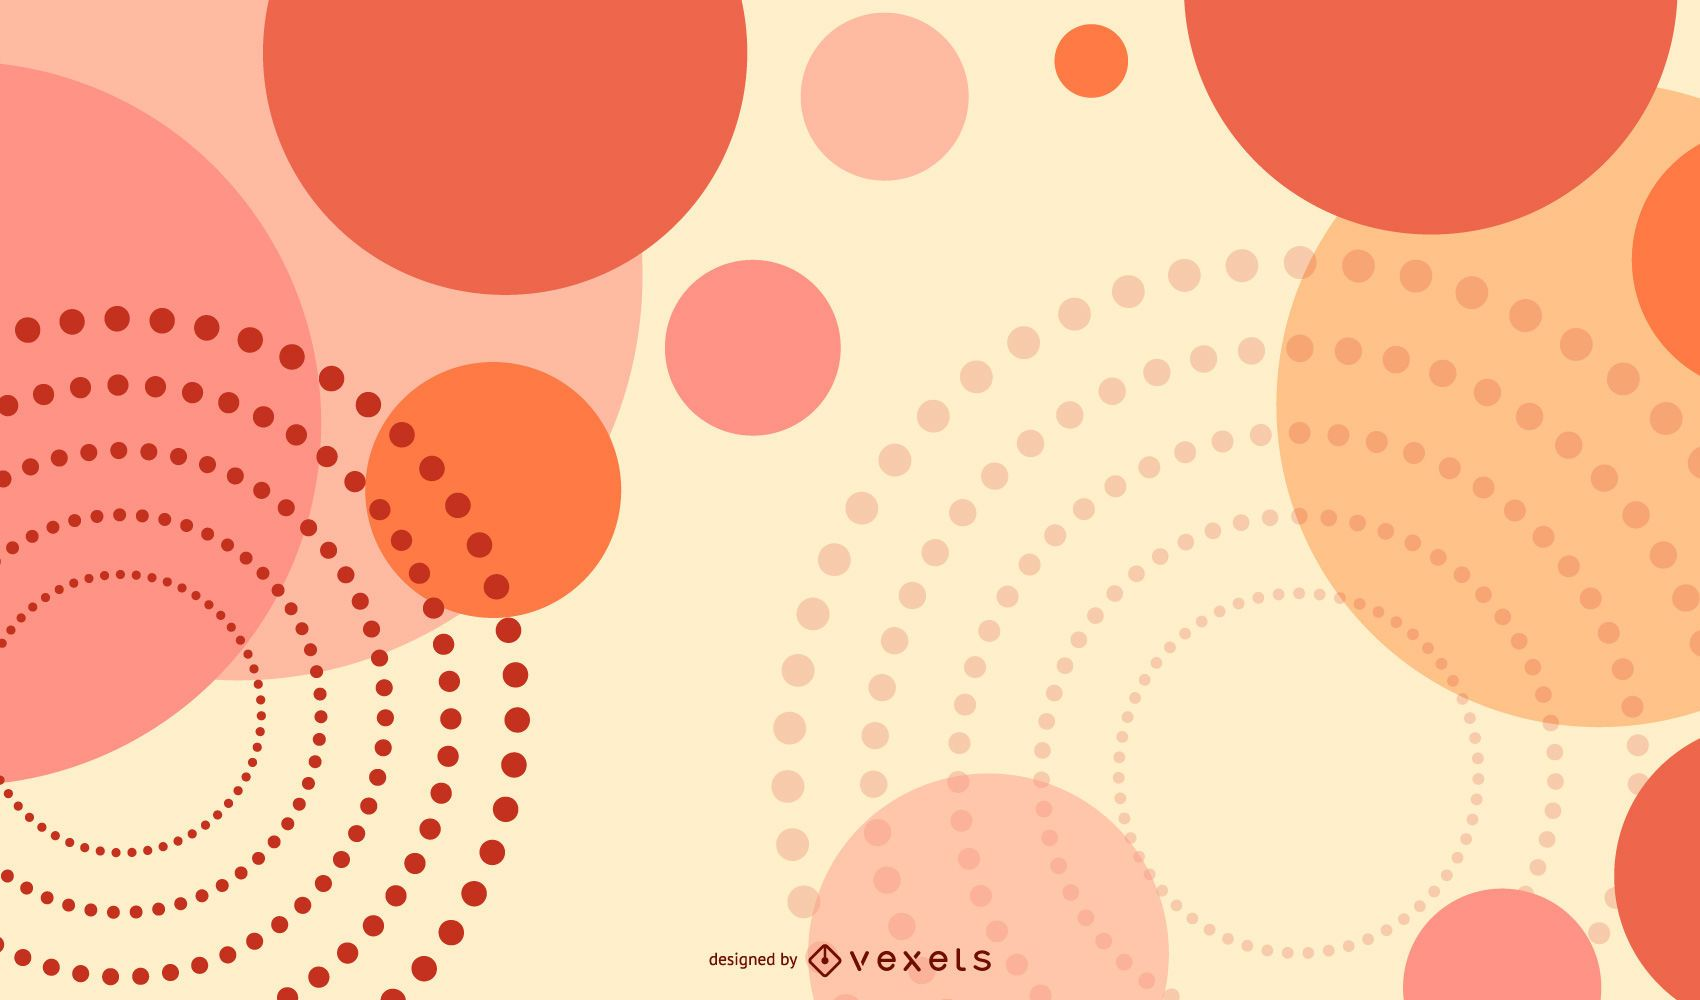 Abstract Vector Background With Circular Patterns